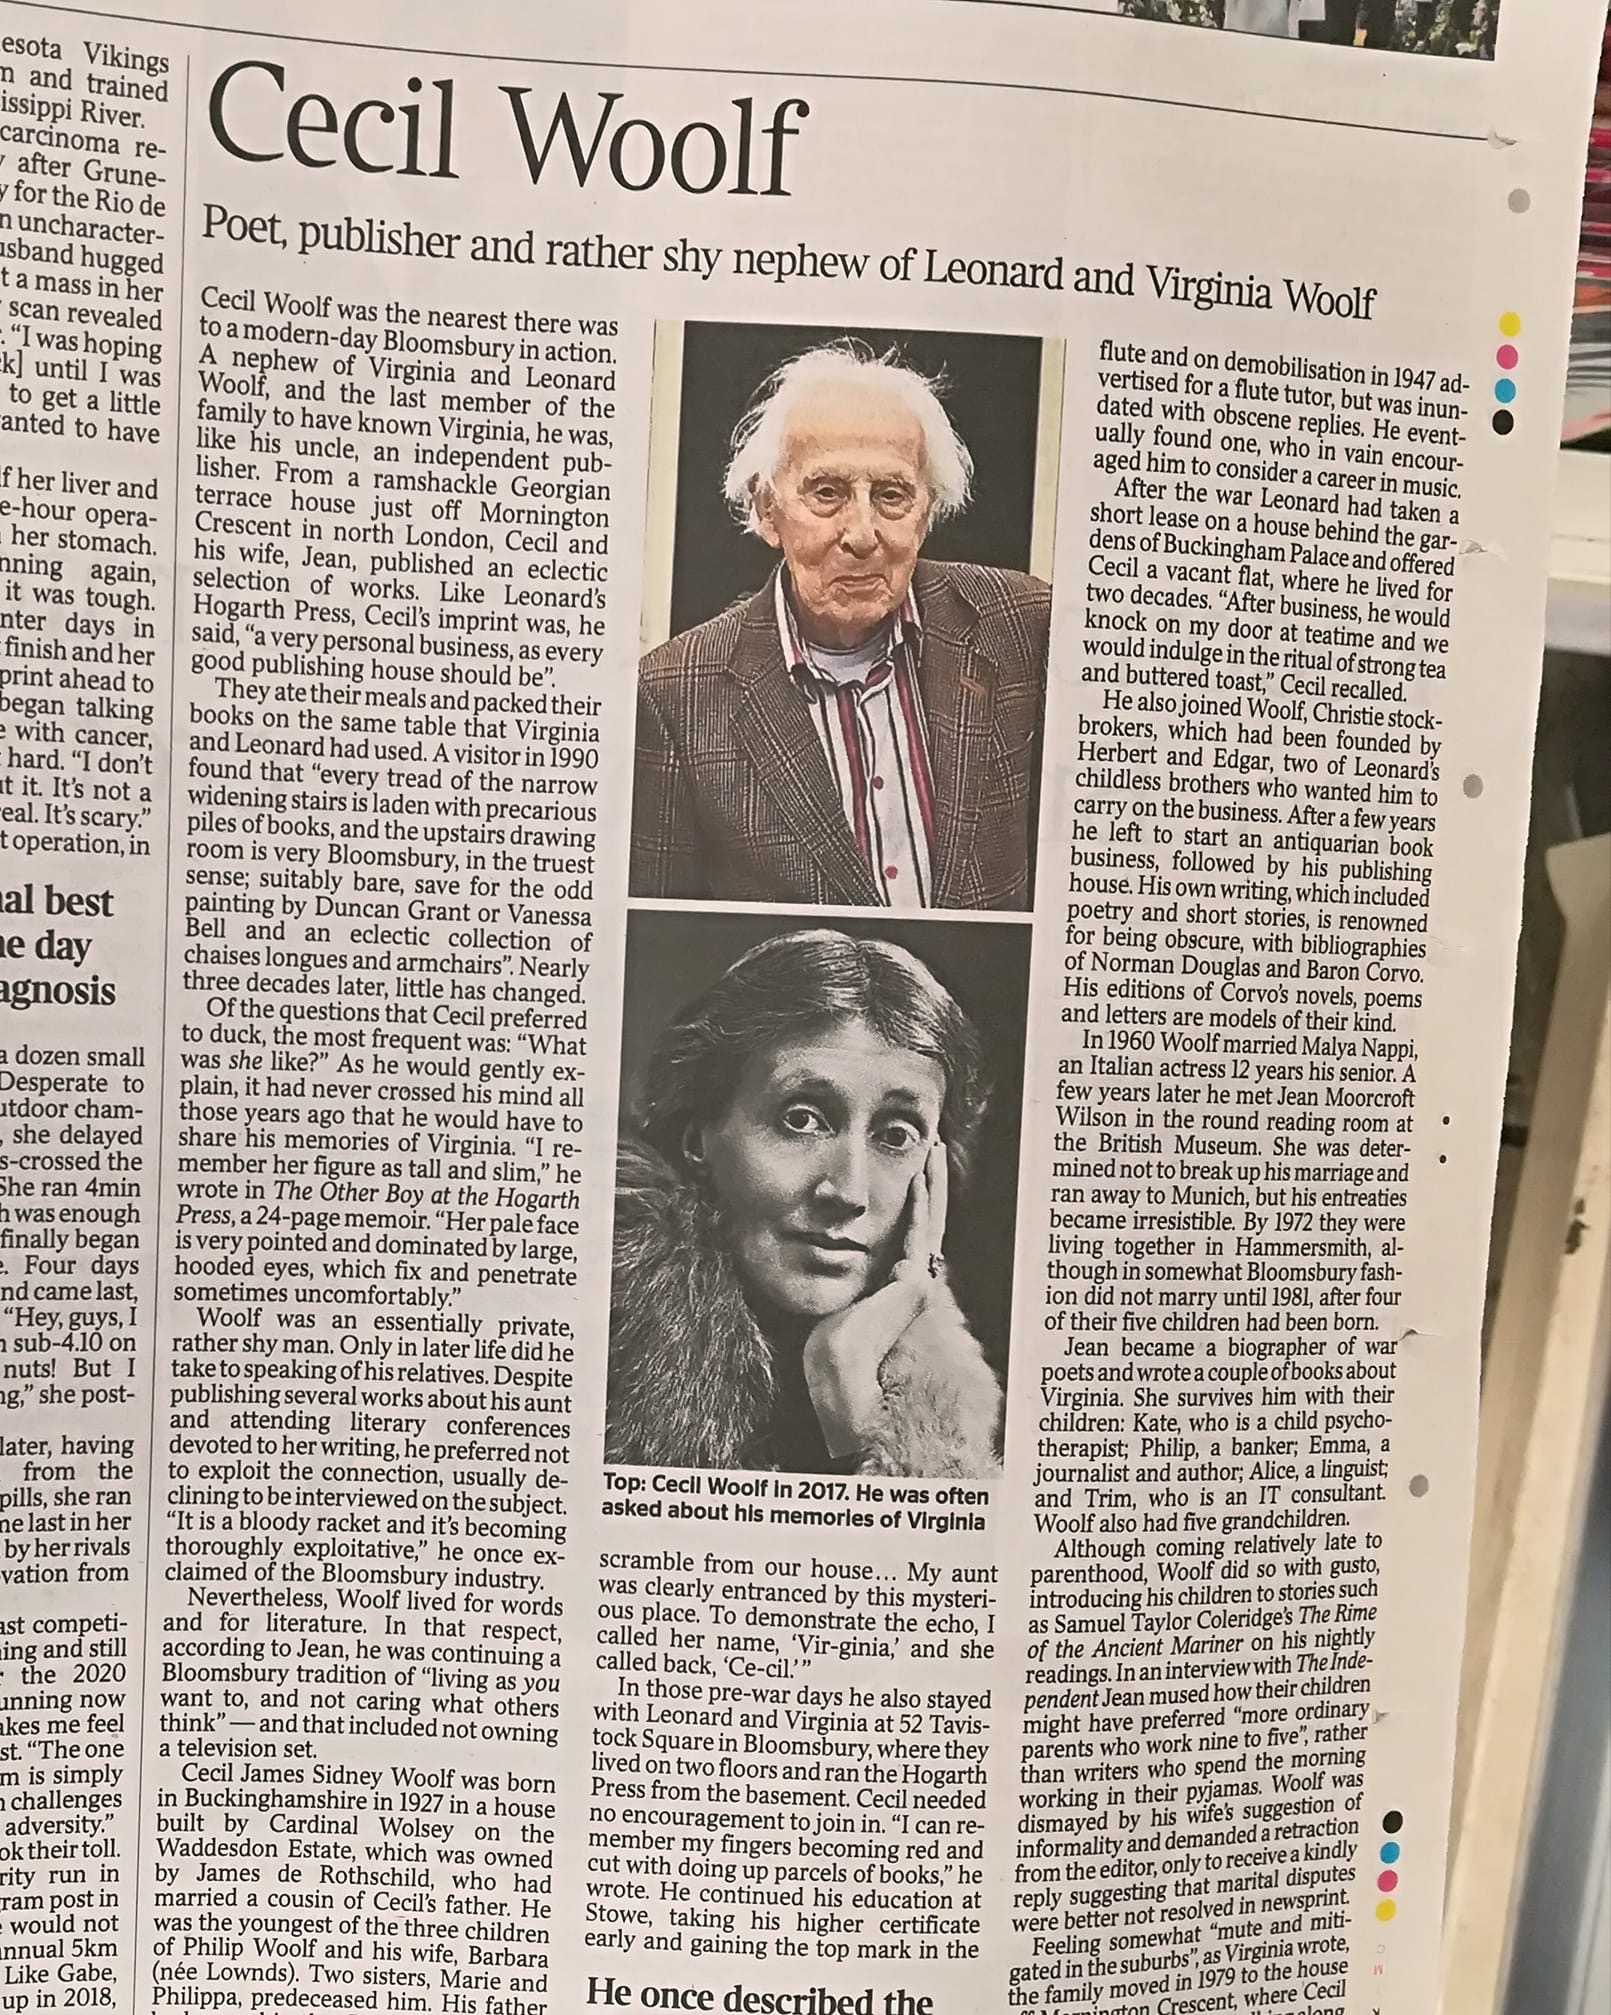 Cecil Woolf obituary in The Times | Blogging Woolf